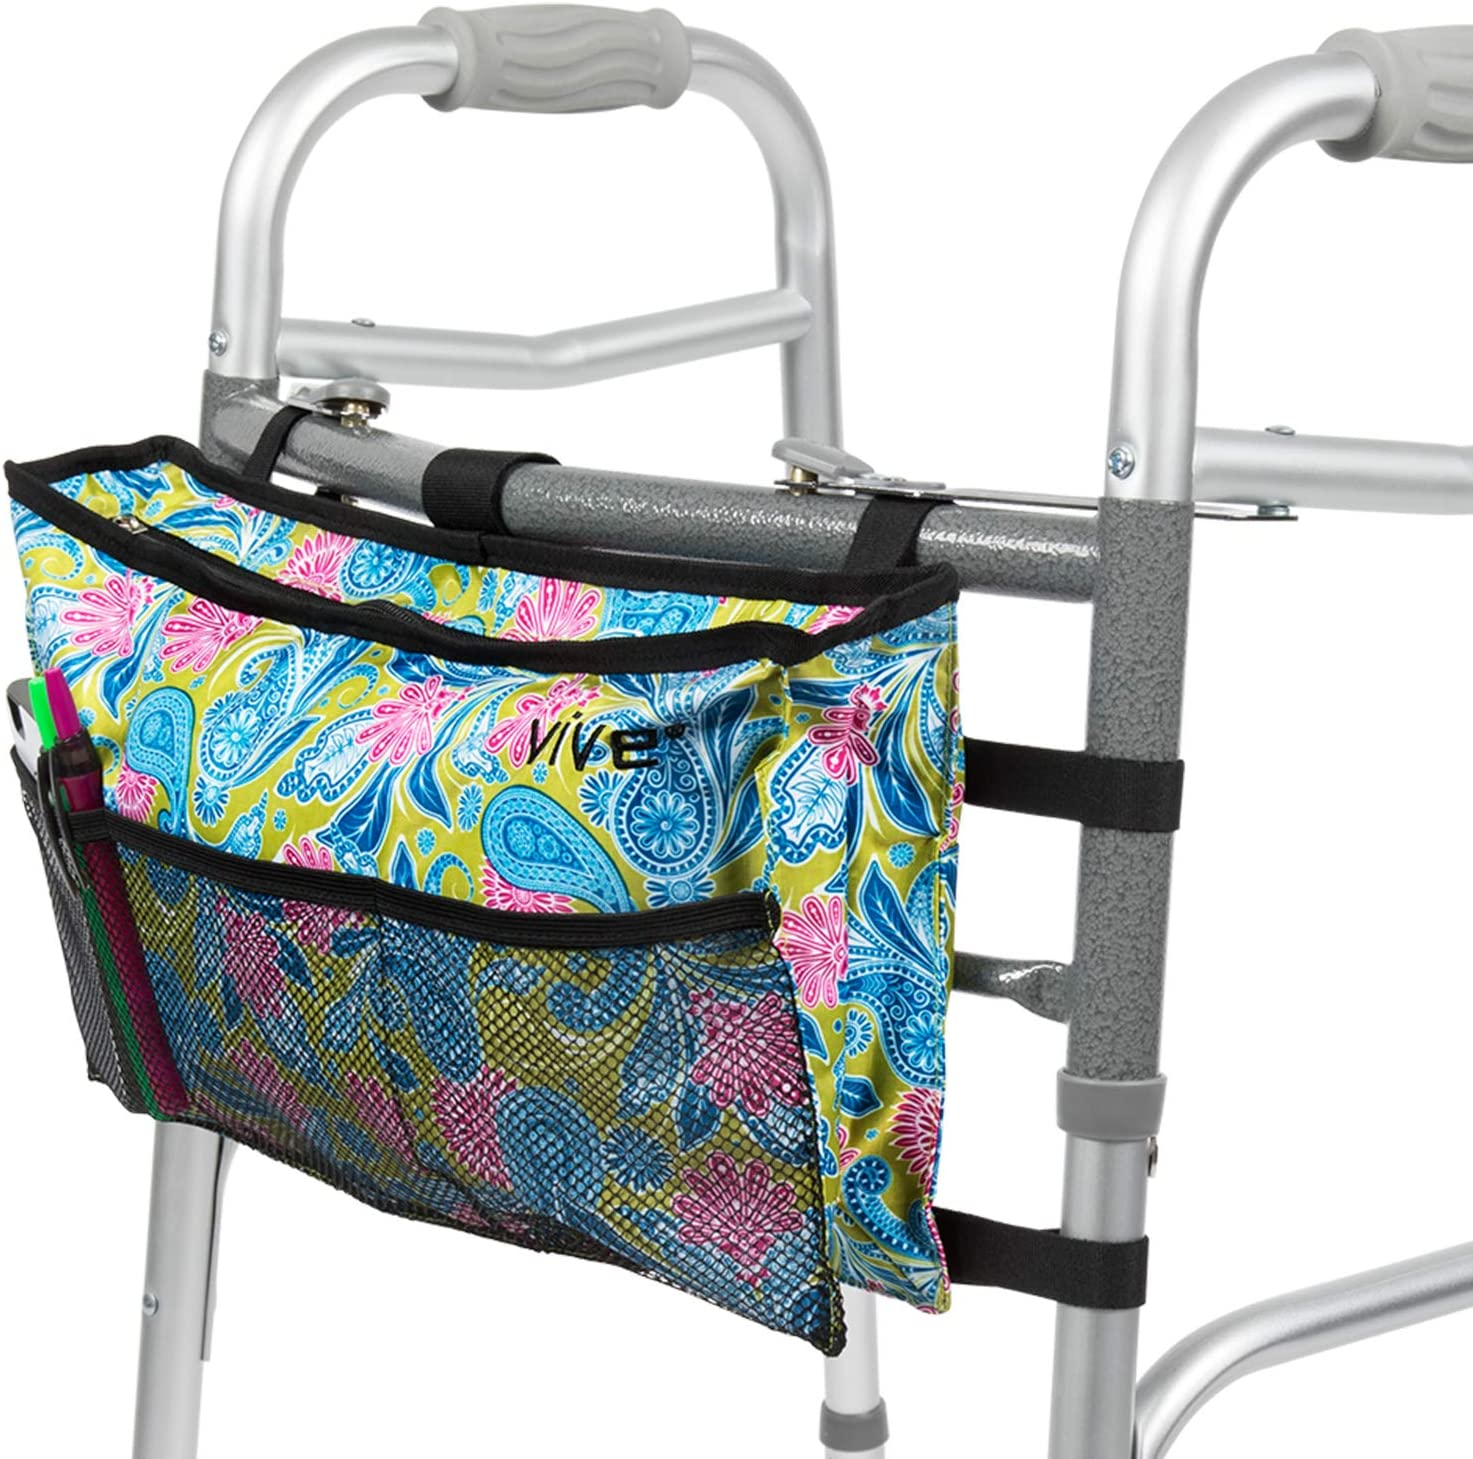 Vive Walker Bag - Water Resistant Accessory Basket Provides Hands Free Storage for Folding Walkers - Attachment Fits Wide and Narrow Styles - Tote Caddy Pouch for Elderly, Seniors, Handicap, Disabled: Health & Personal Care